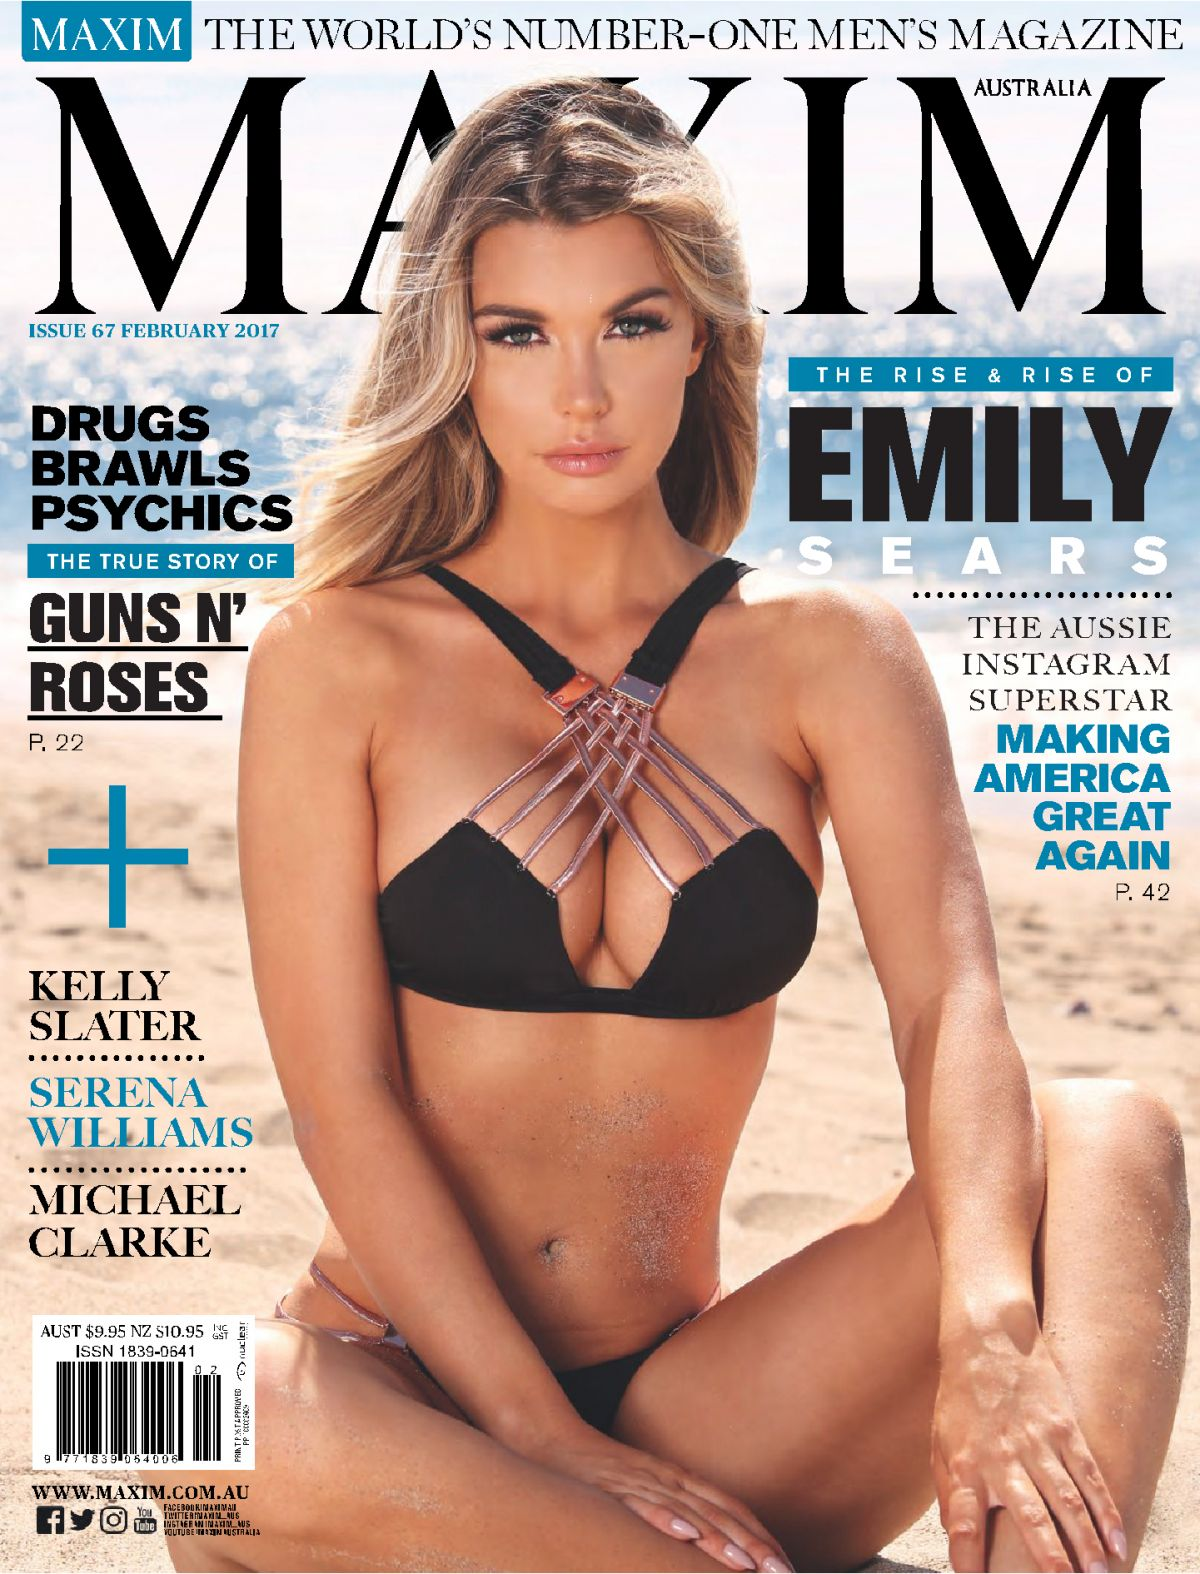 EMILY SEARS in Maxim Magazine, Australia February 2017 Issue